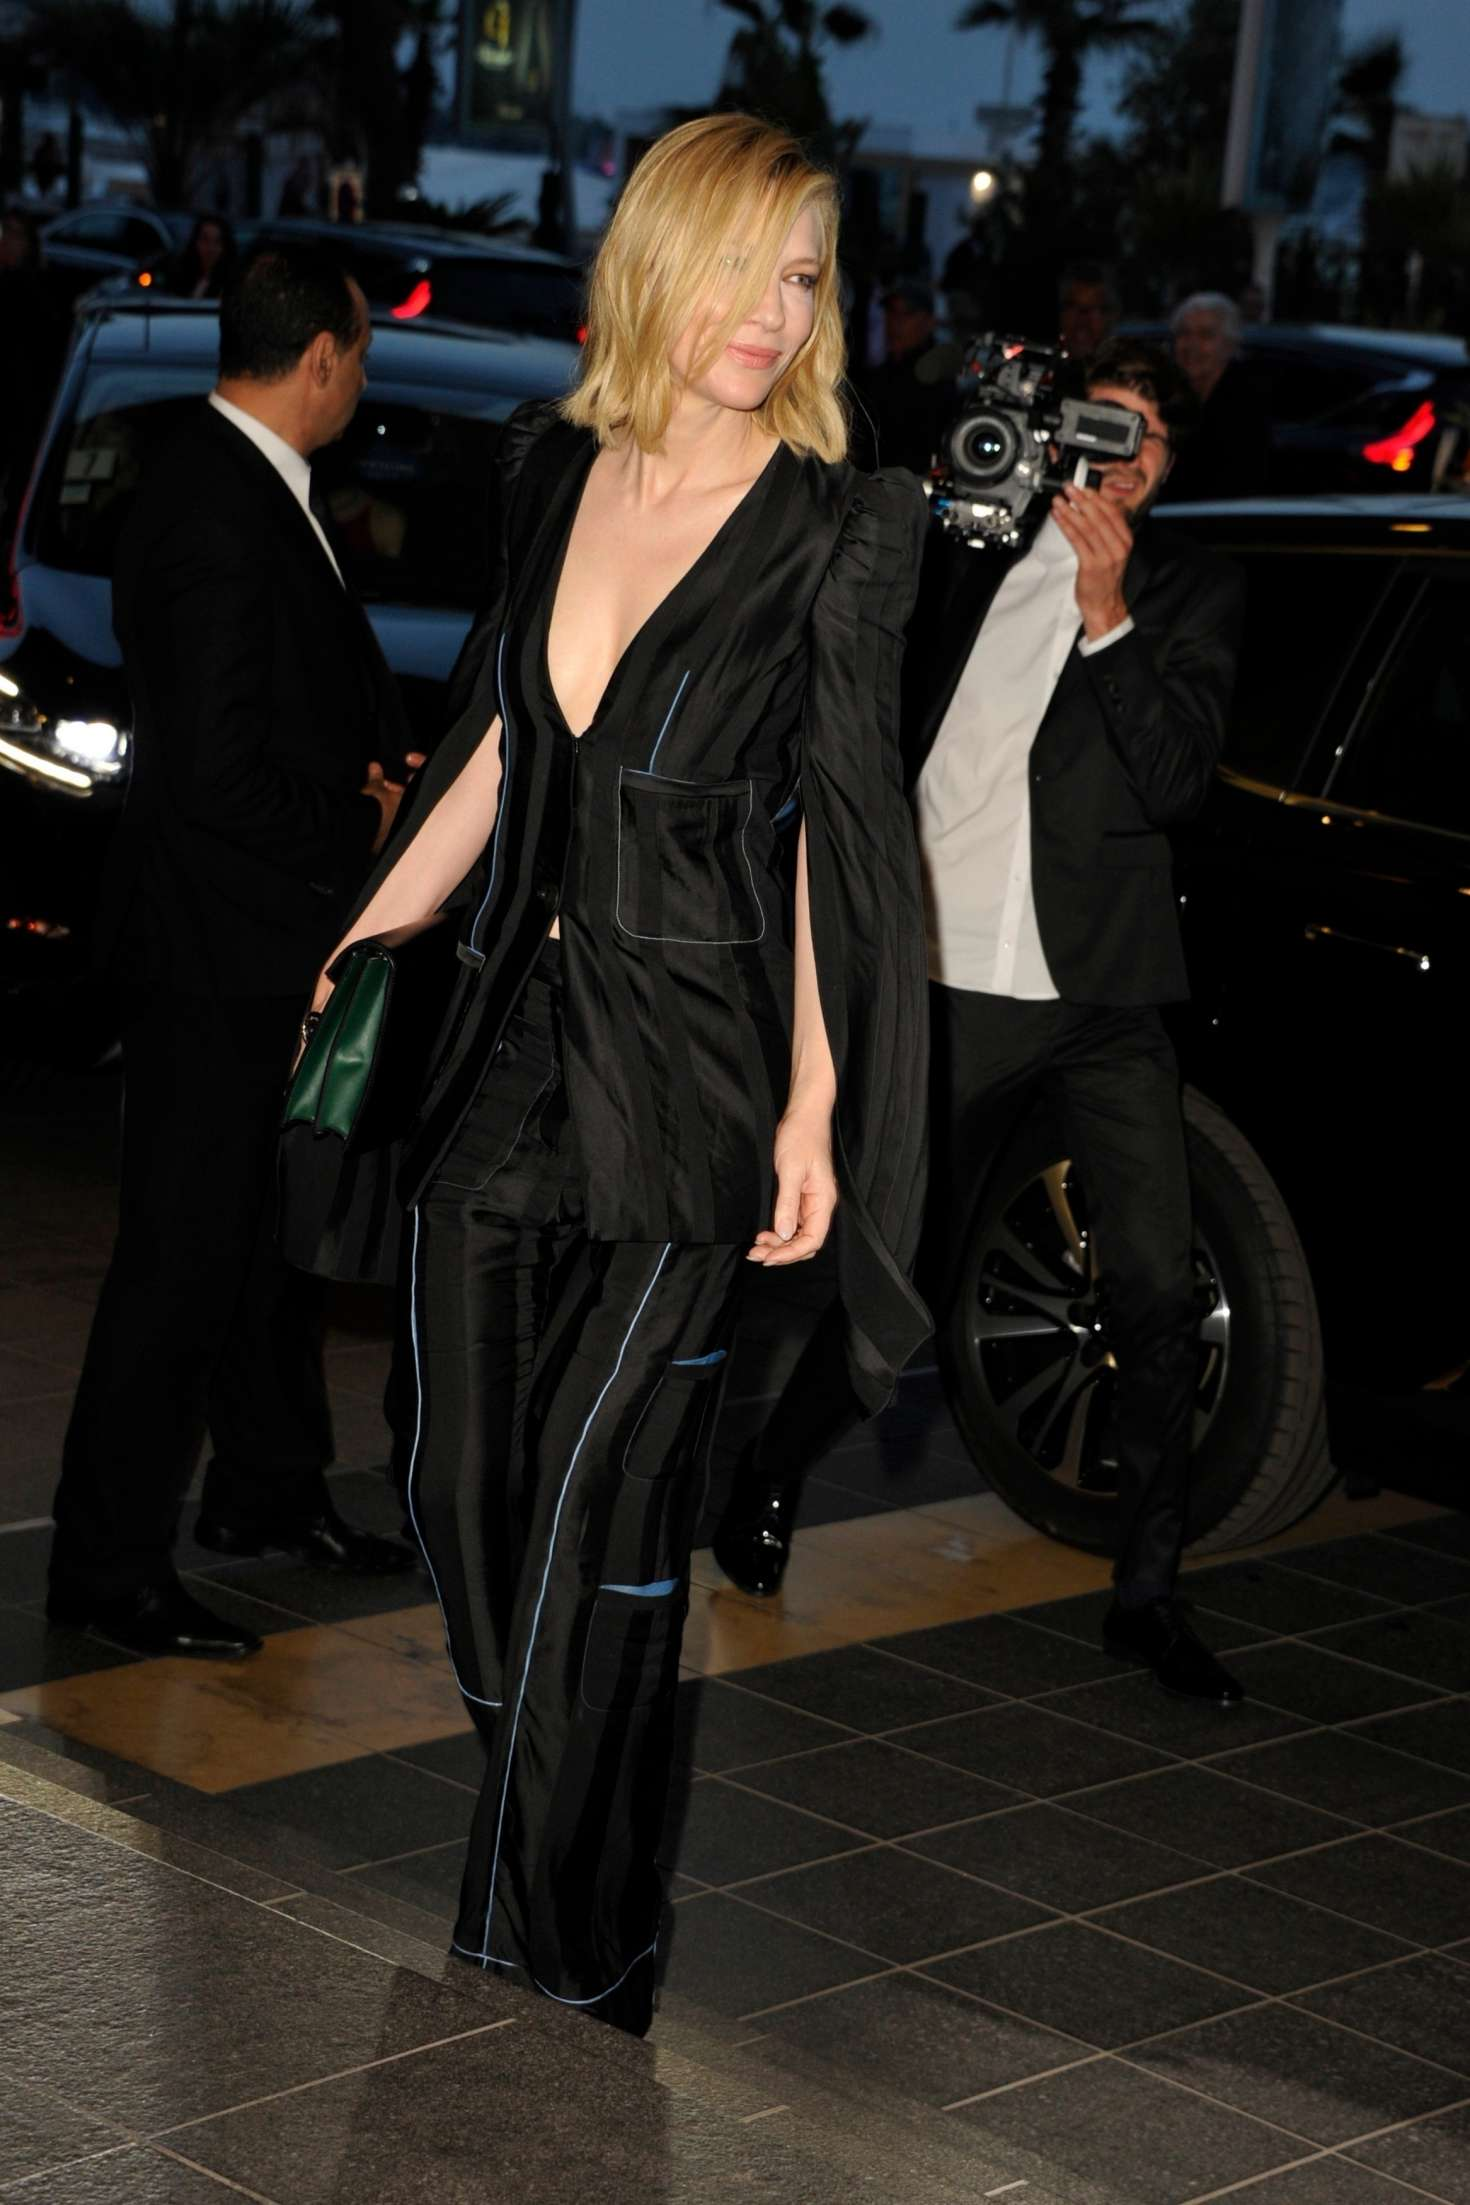 Cate Blanchett 2018 : Cate Blanchett: Arrives at the Vanity Fair Party -04